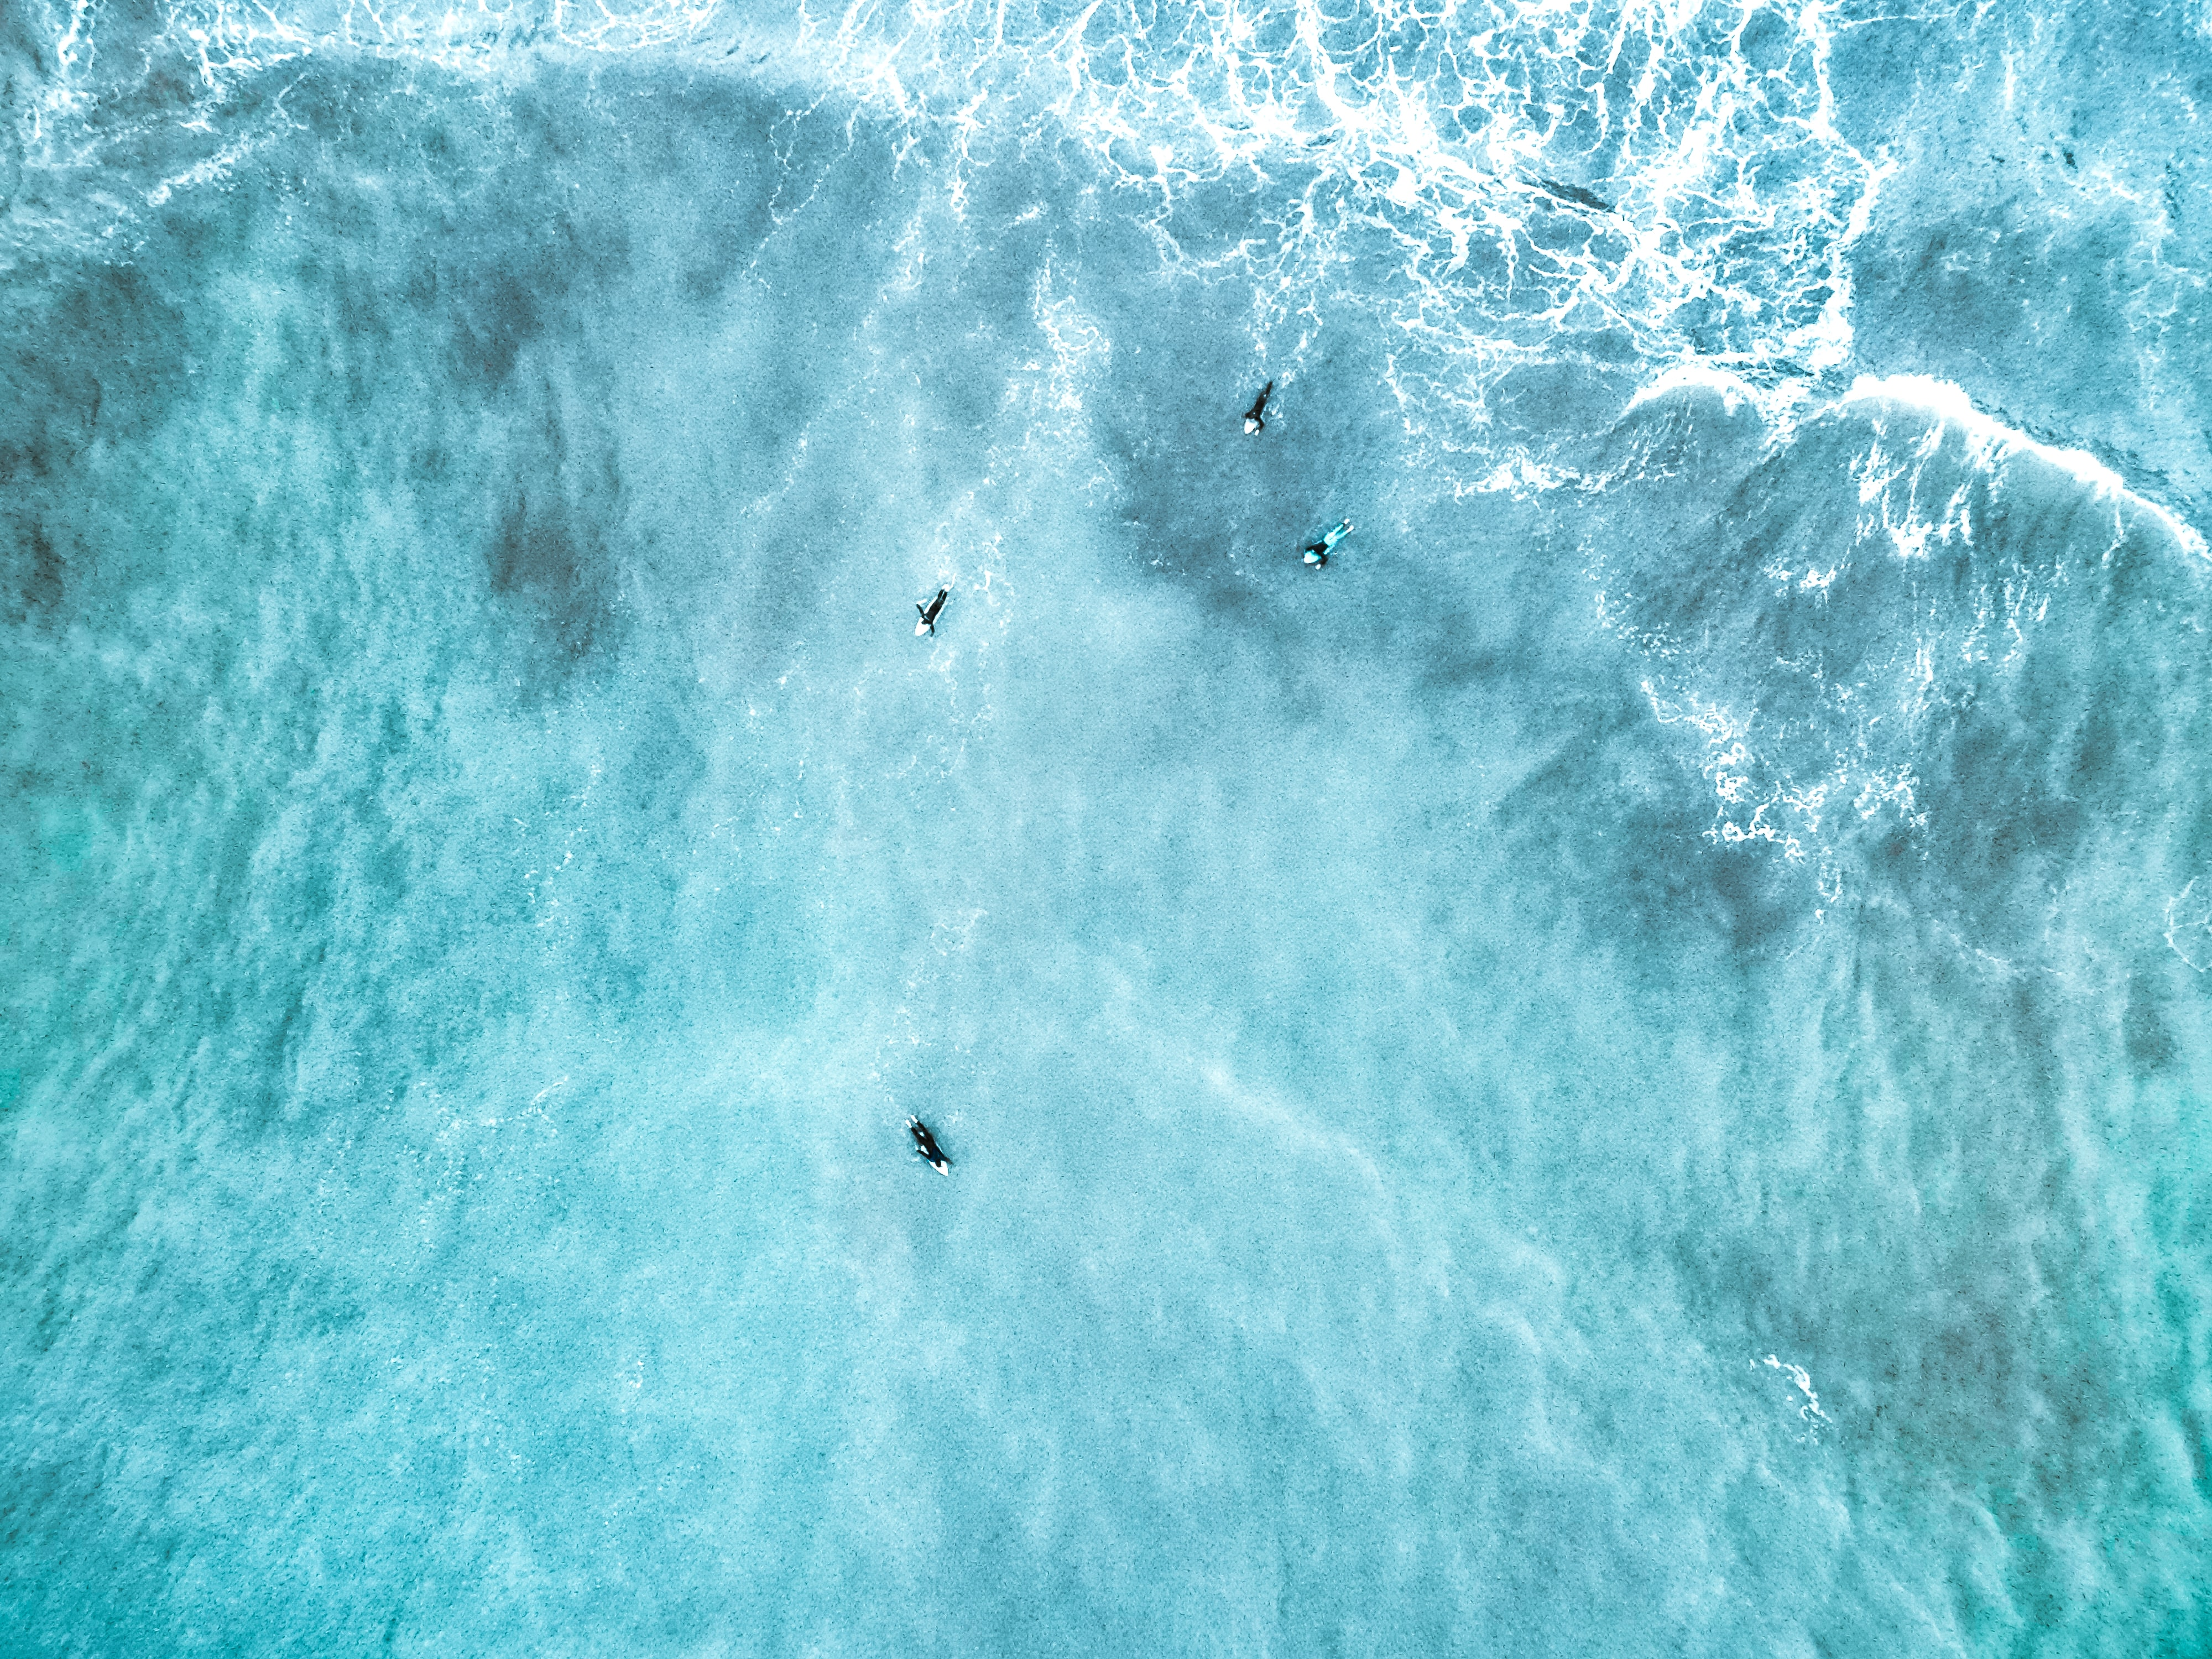 bird's eye view photography of person surfing